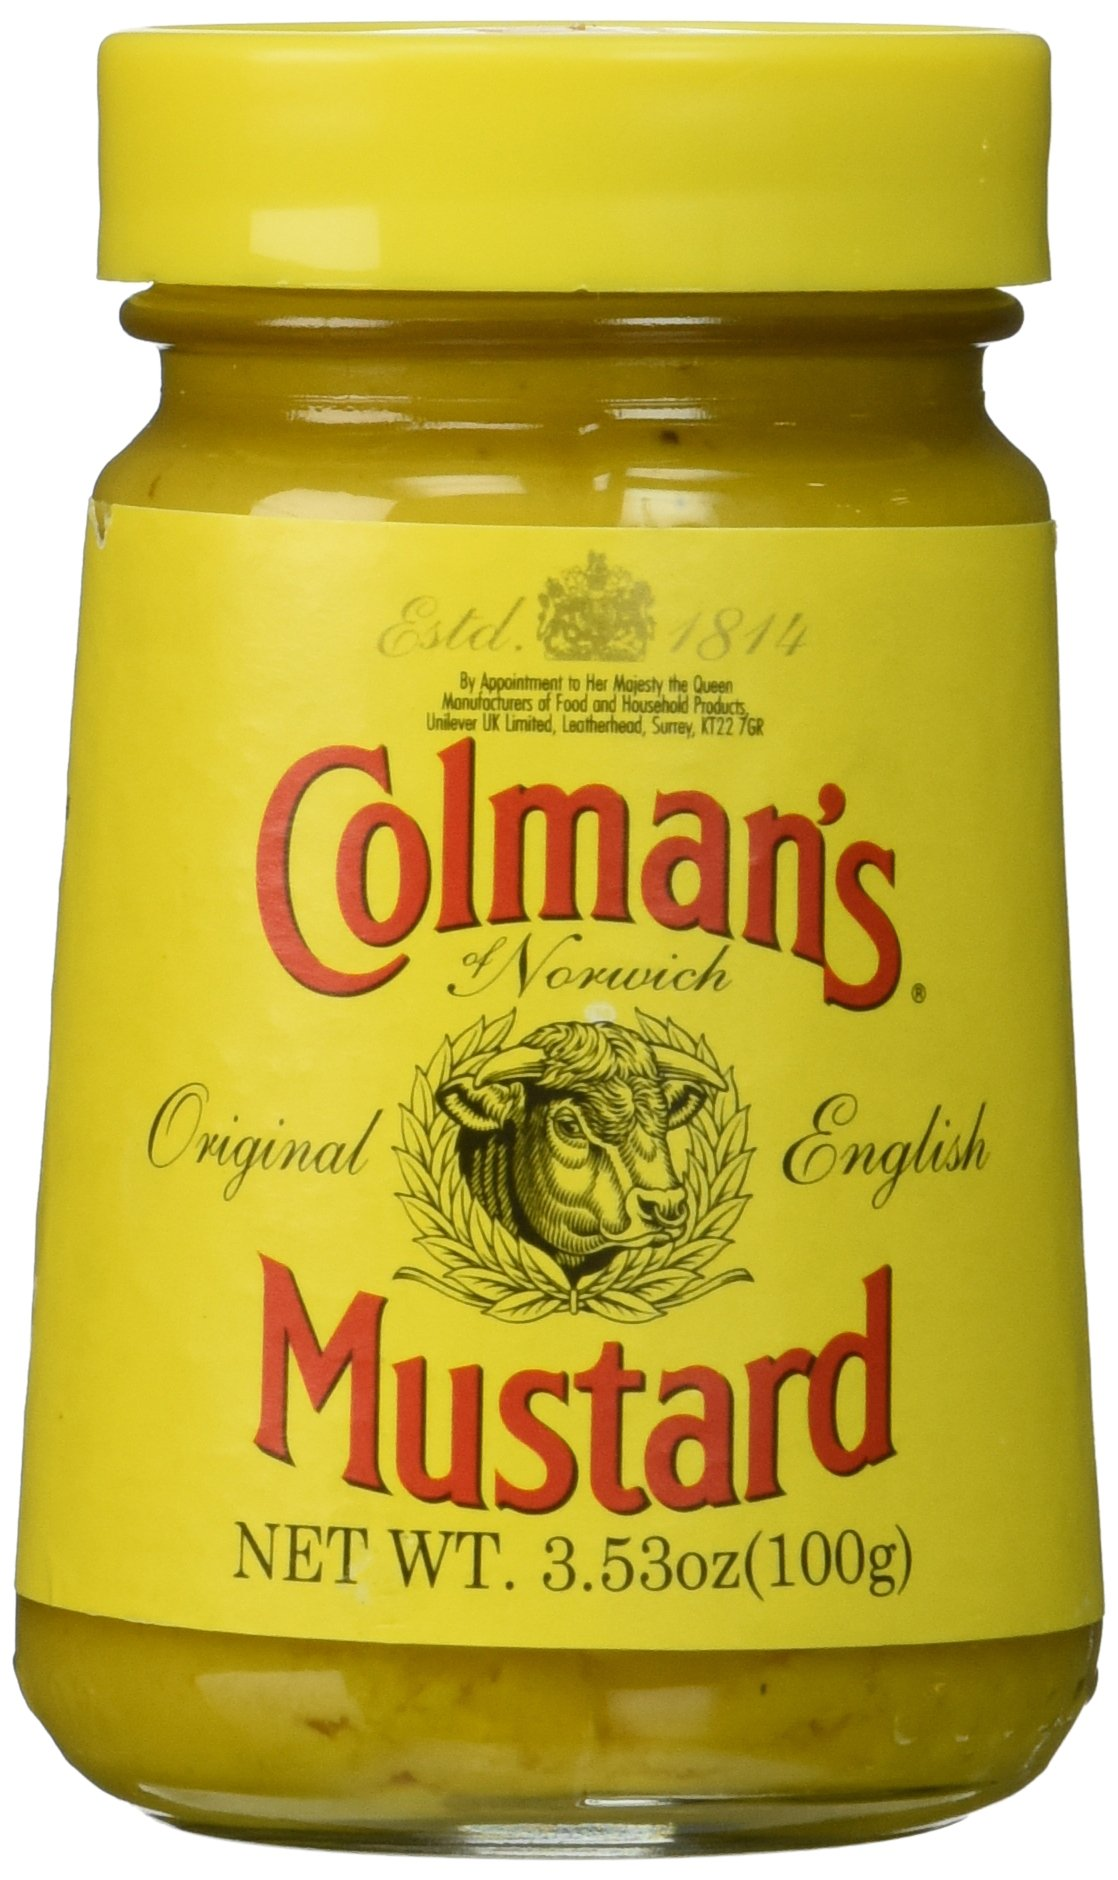 Colmans Original English Mustard, 3.53 Ounce (2 pack)